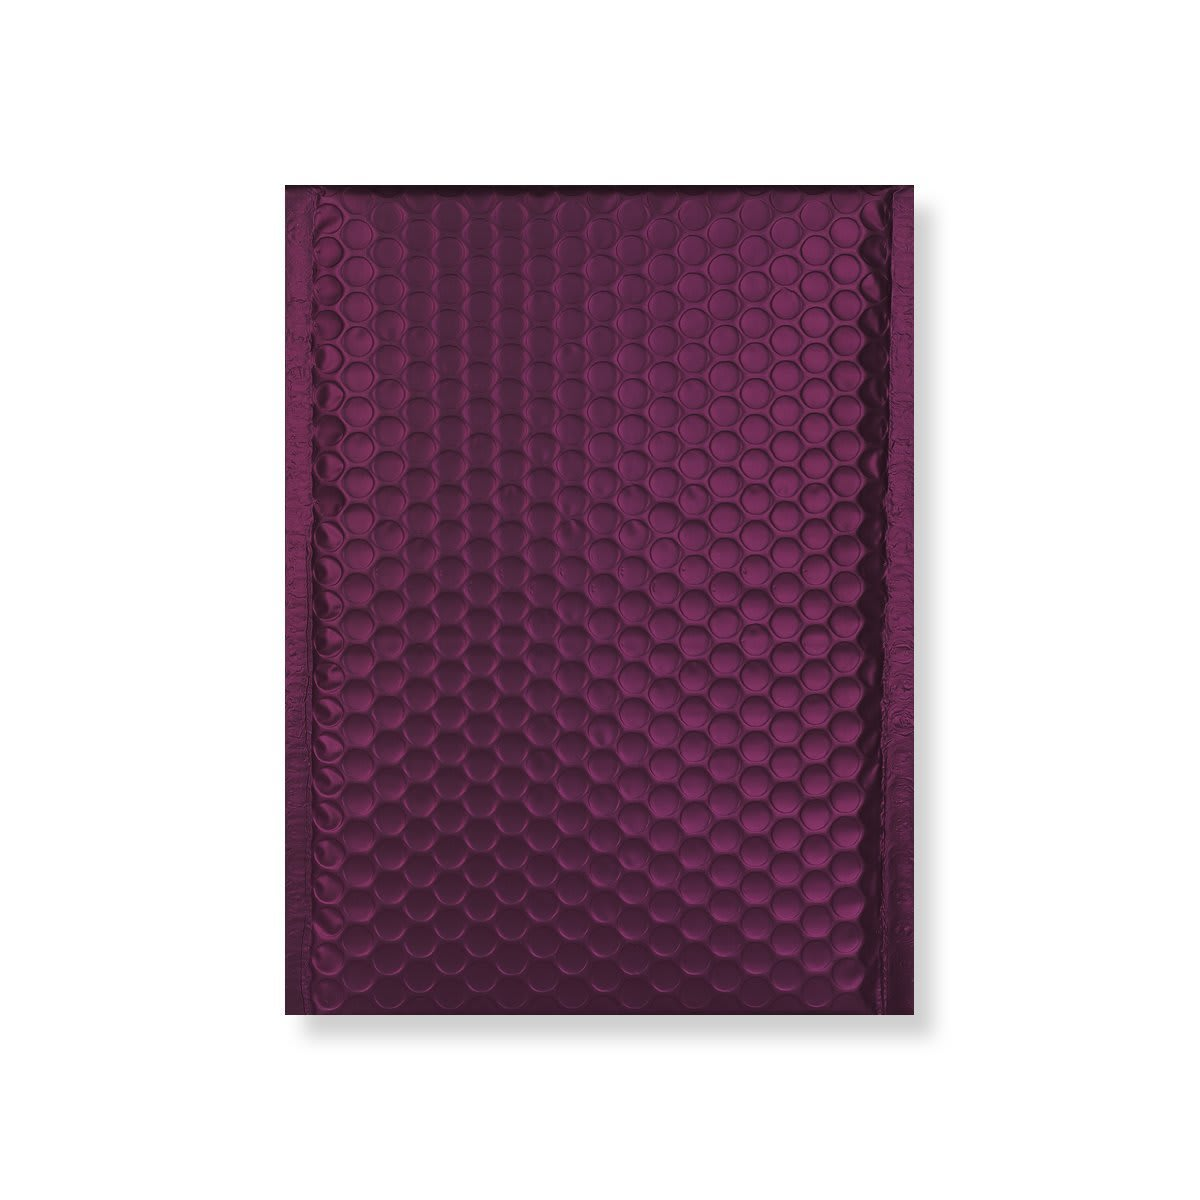 C4 MATT METALLIC BURGUNDY PADDED ENVELOPES (324 x 230MM)